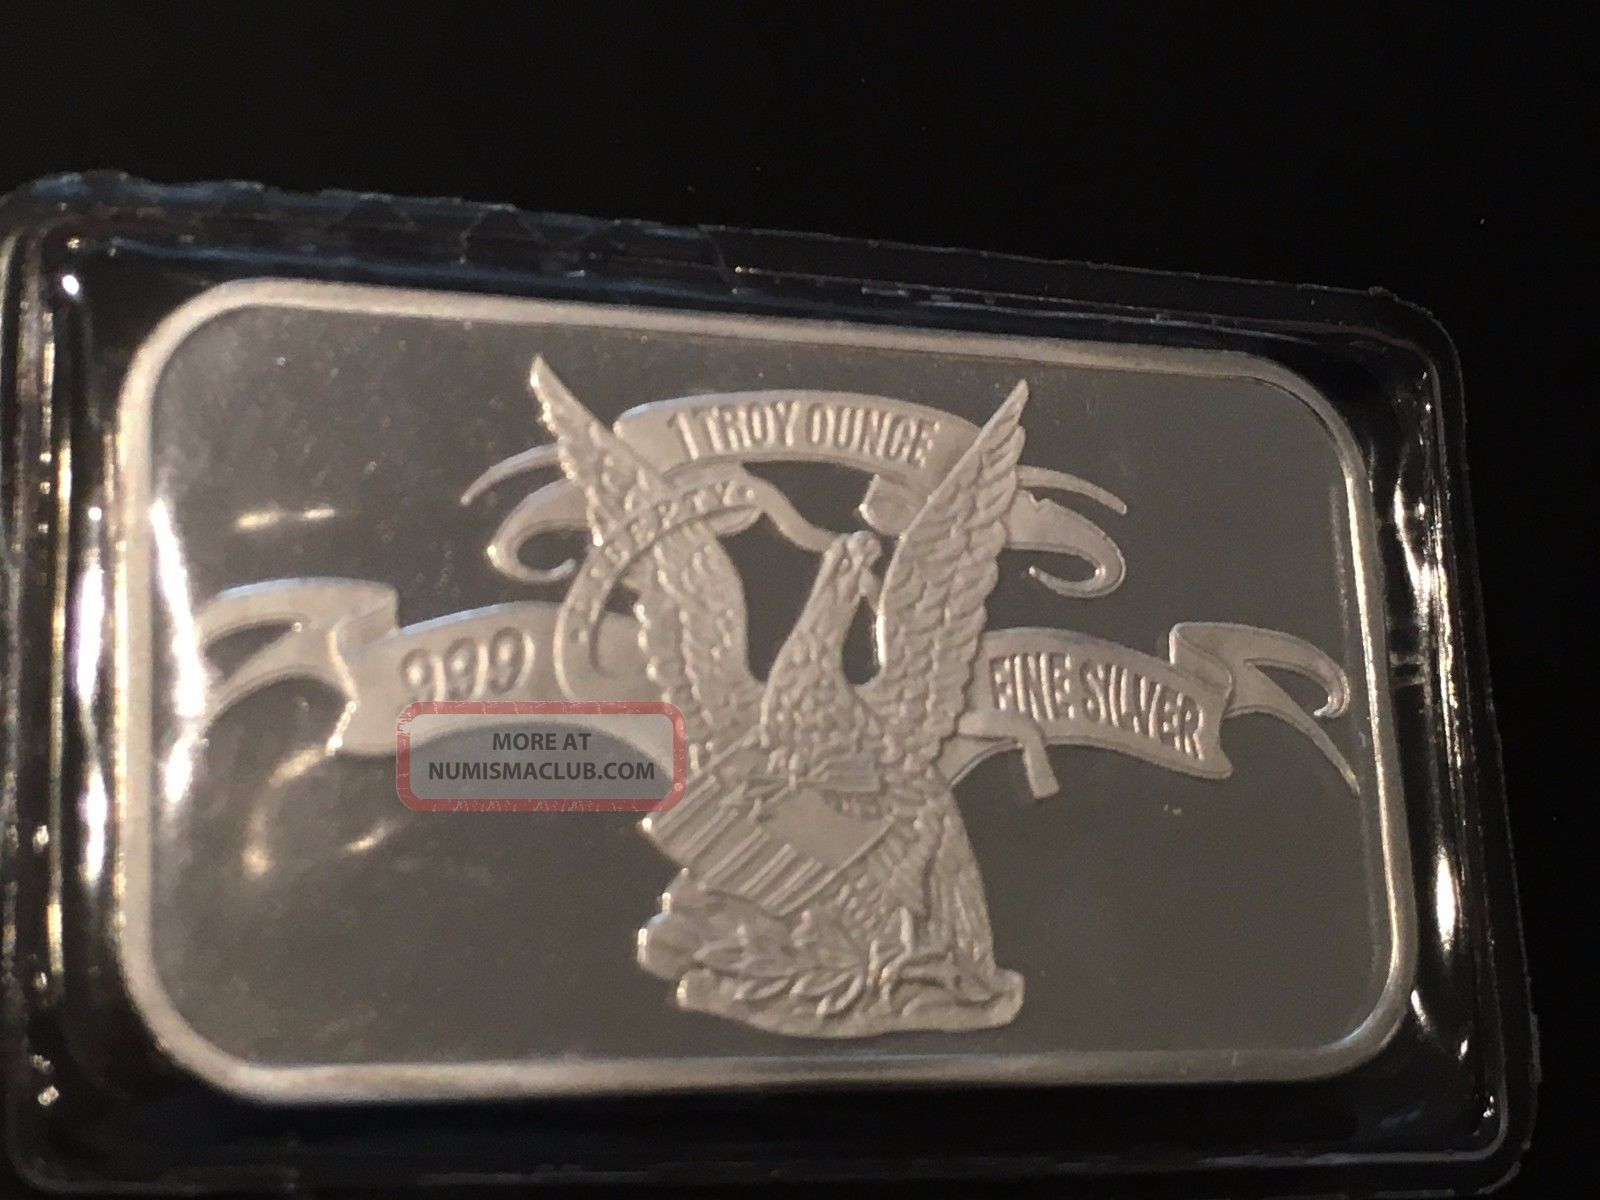 1 Troy Oz 999 Fine Silver Art Collectible Bar Apmex